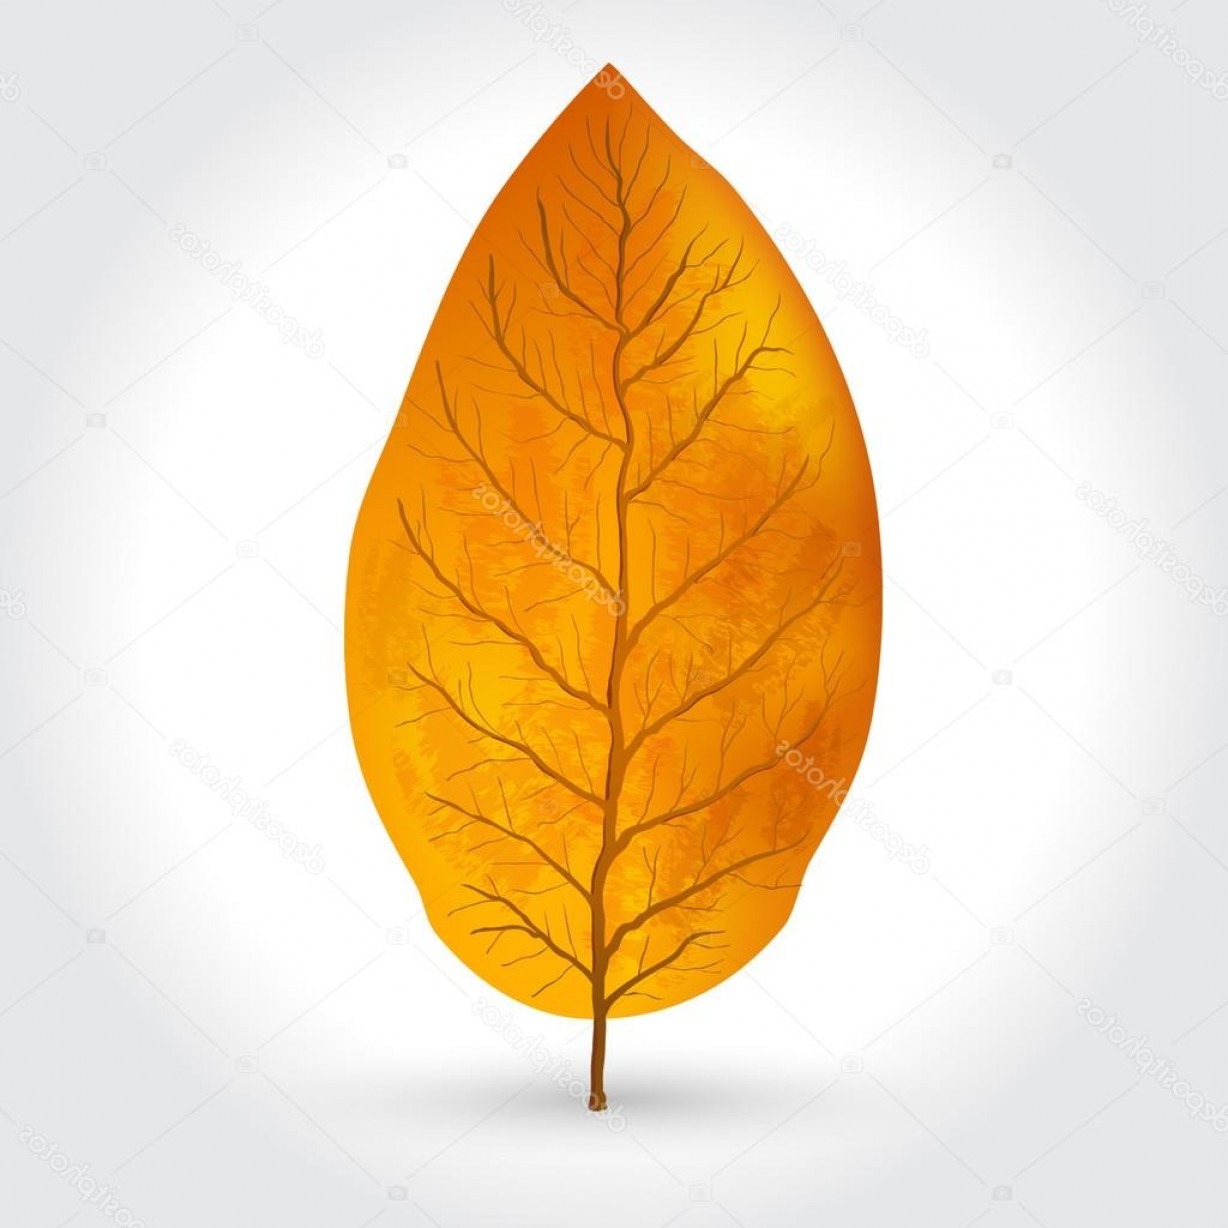 1228x1228 Stock Illustration Tobacco Leaves Vector Illustration Geekchicpro